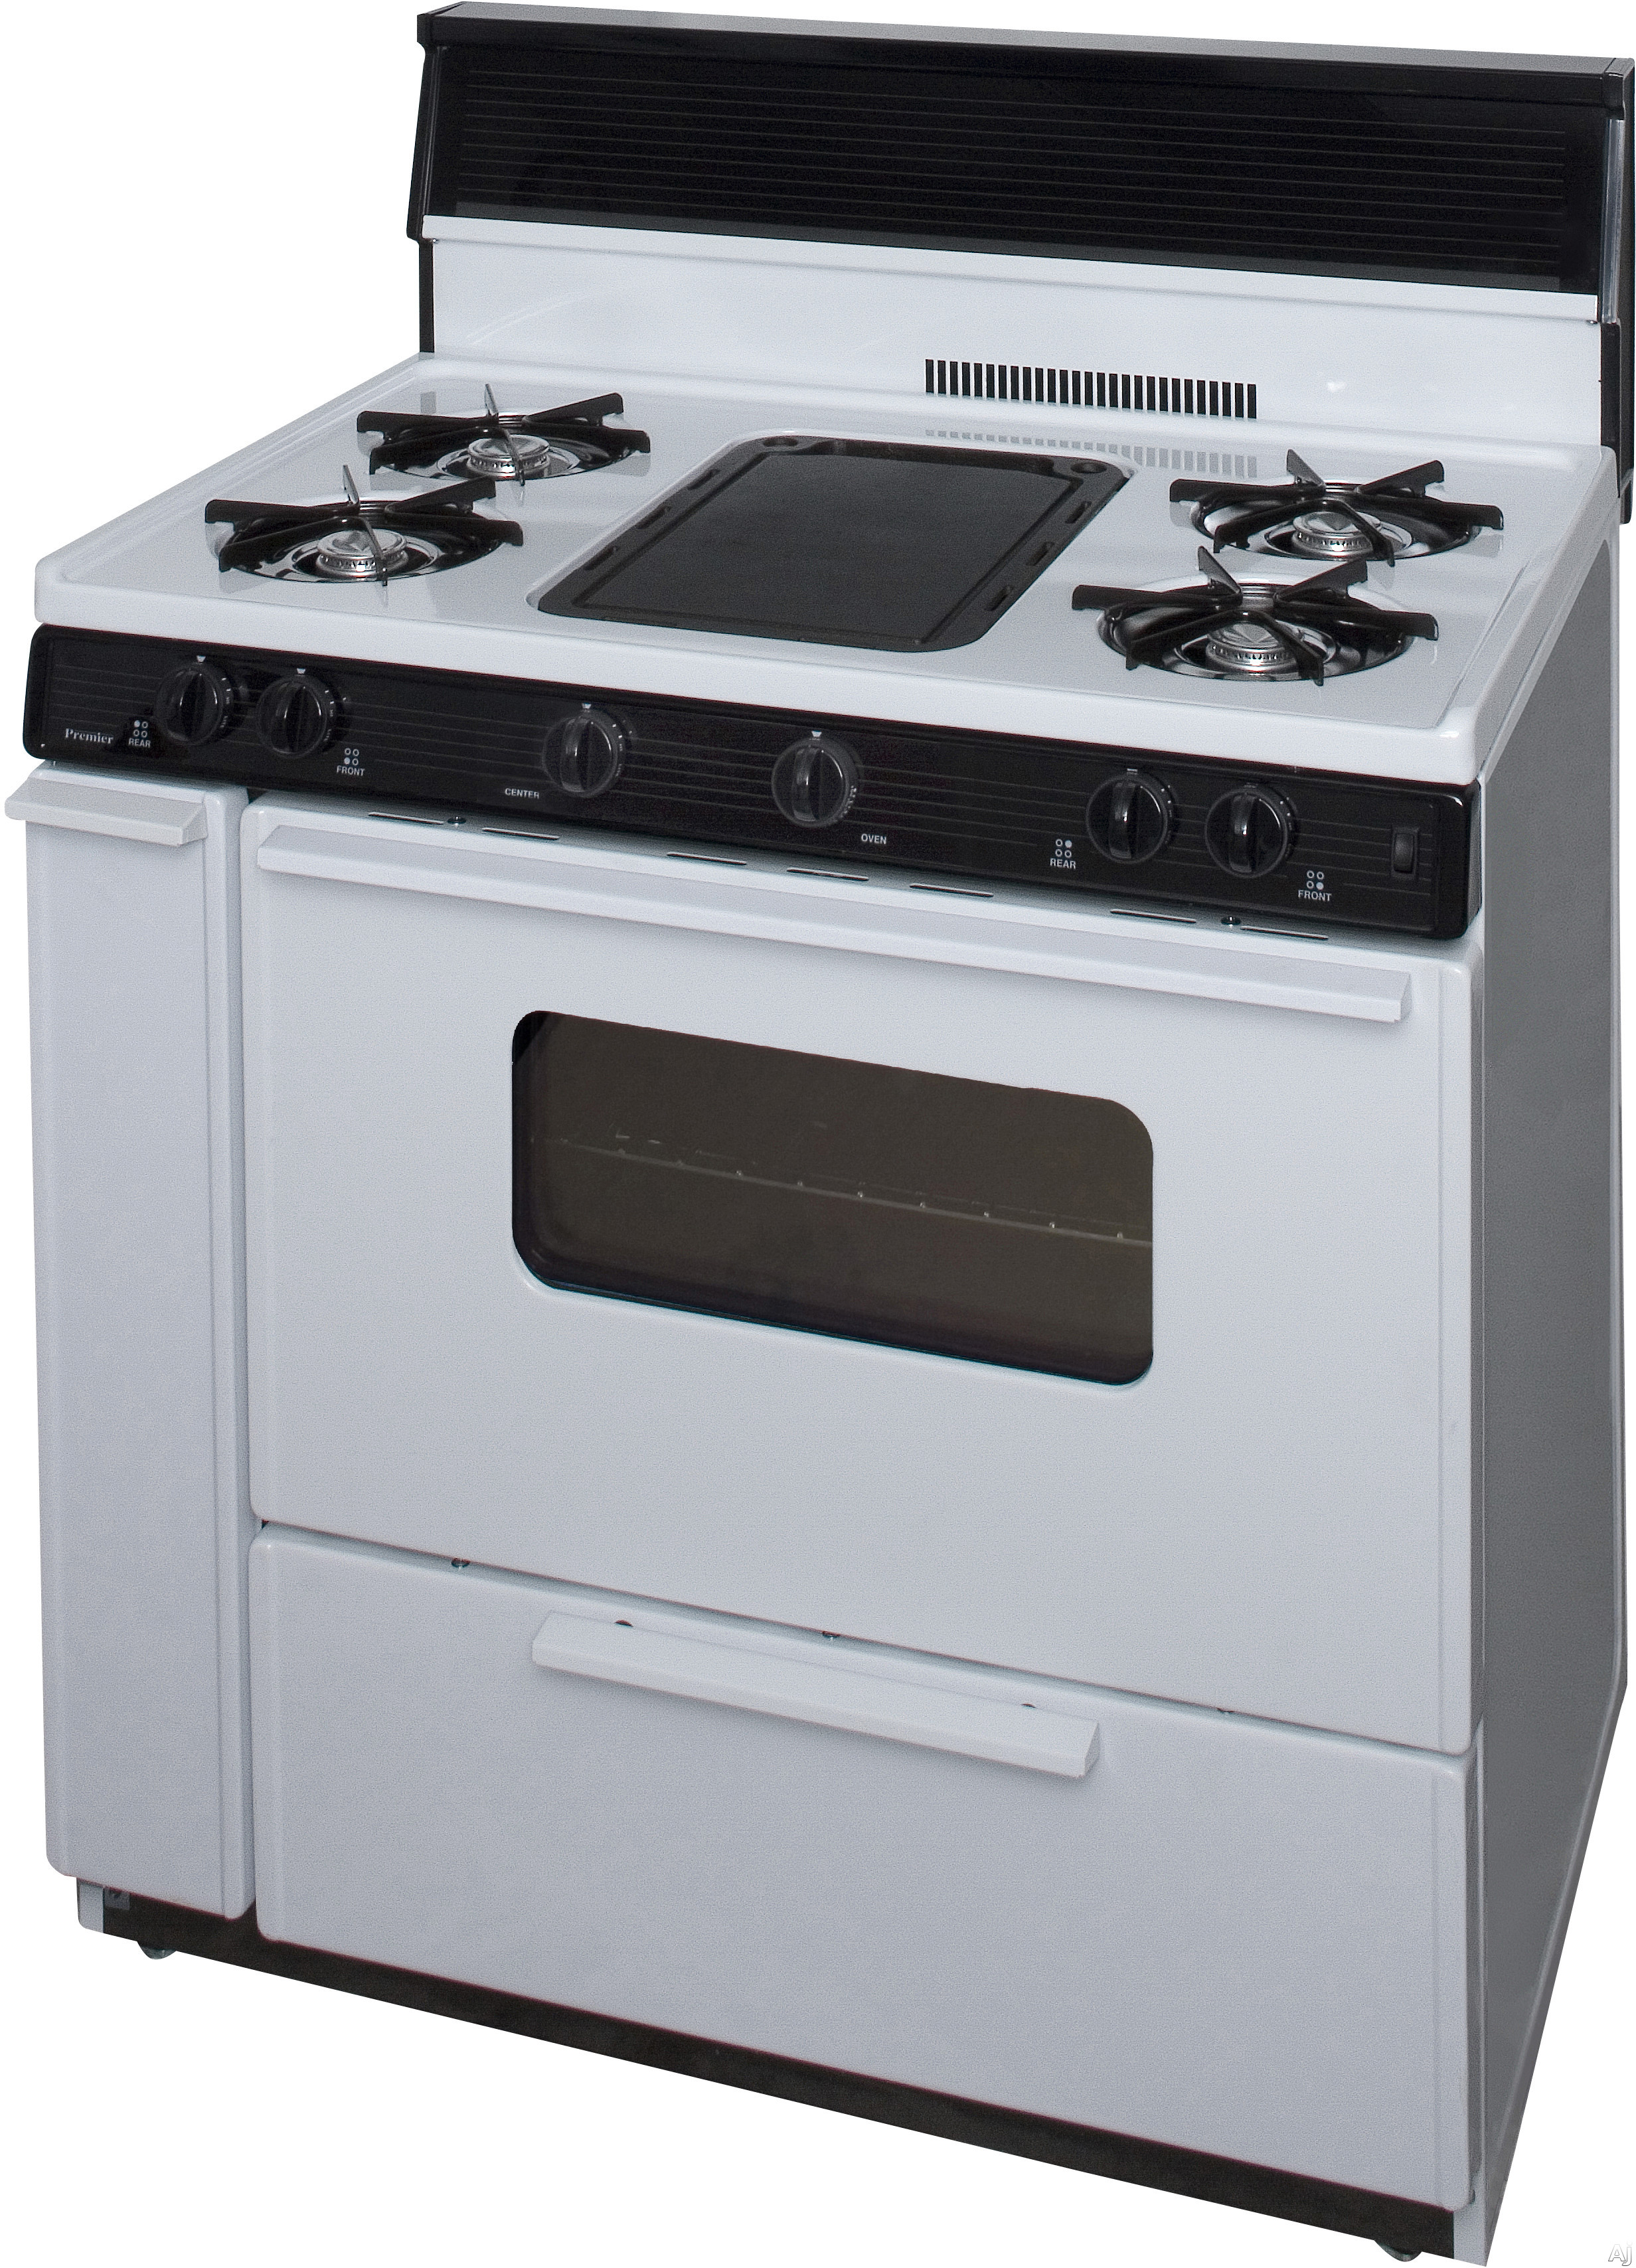 Premier blk5s9wp 36 freestanding gas range with 5 burners for 17000 btu window air conditioner